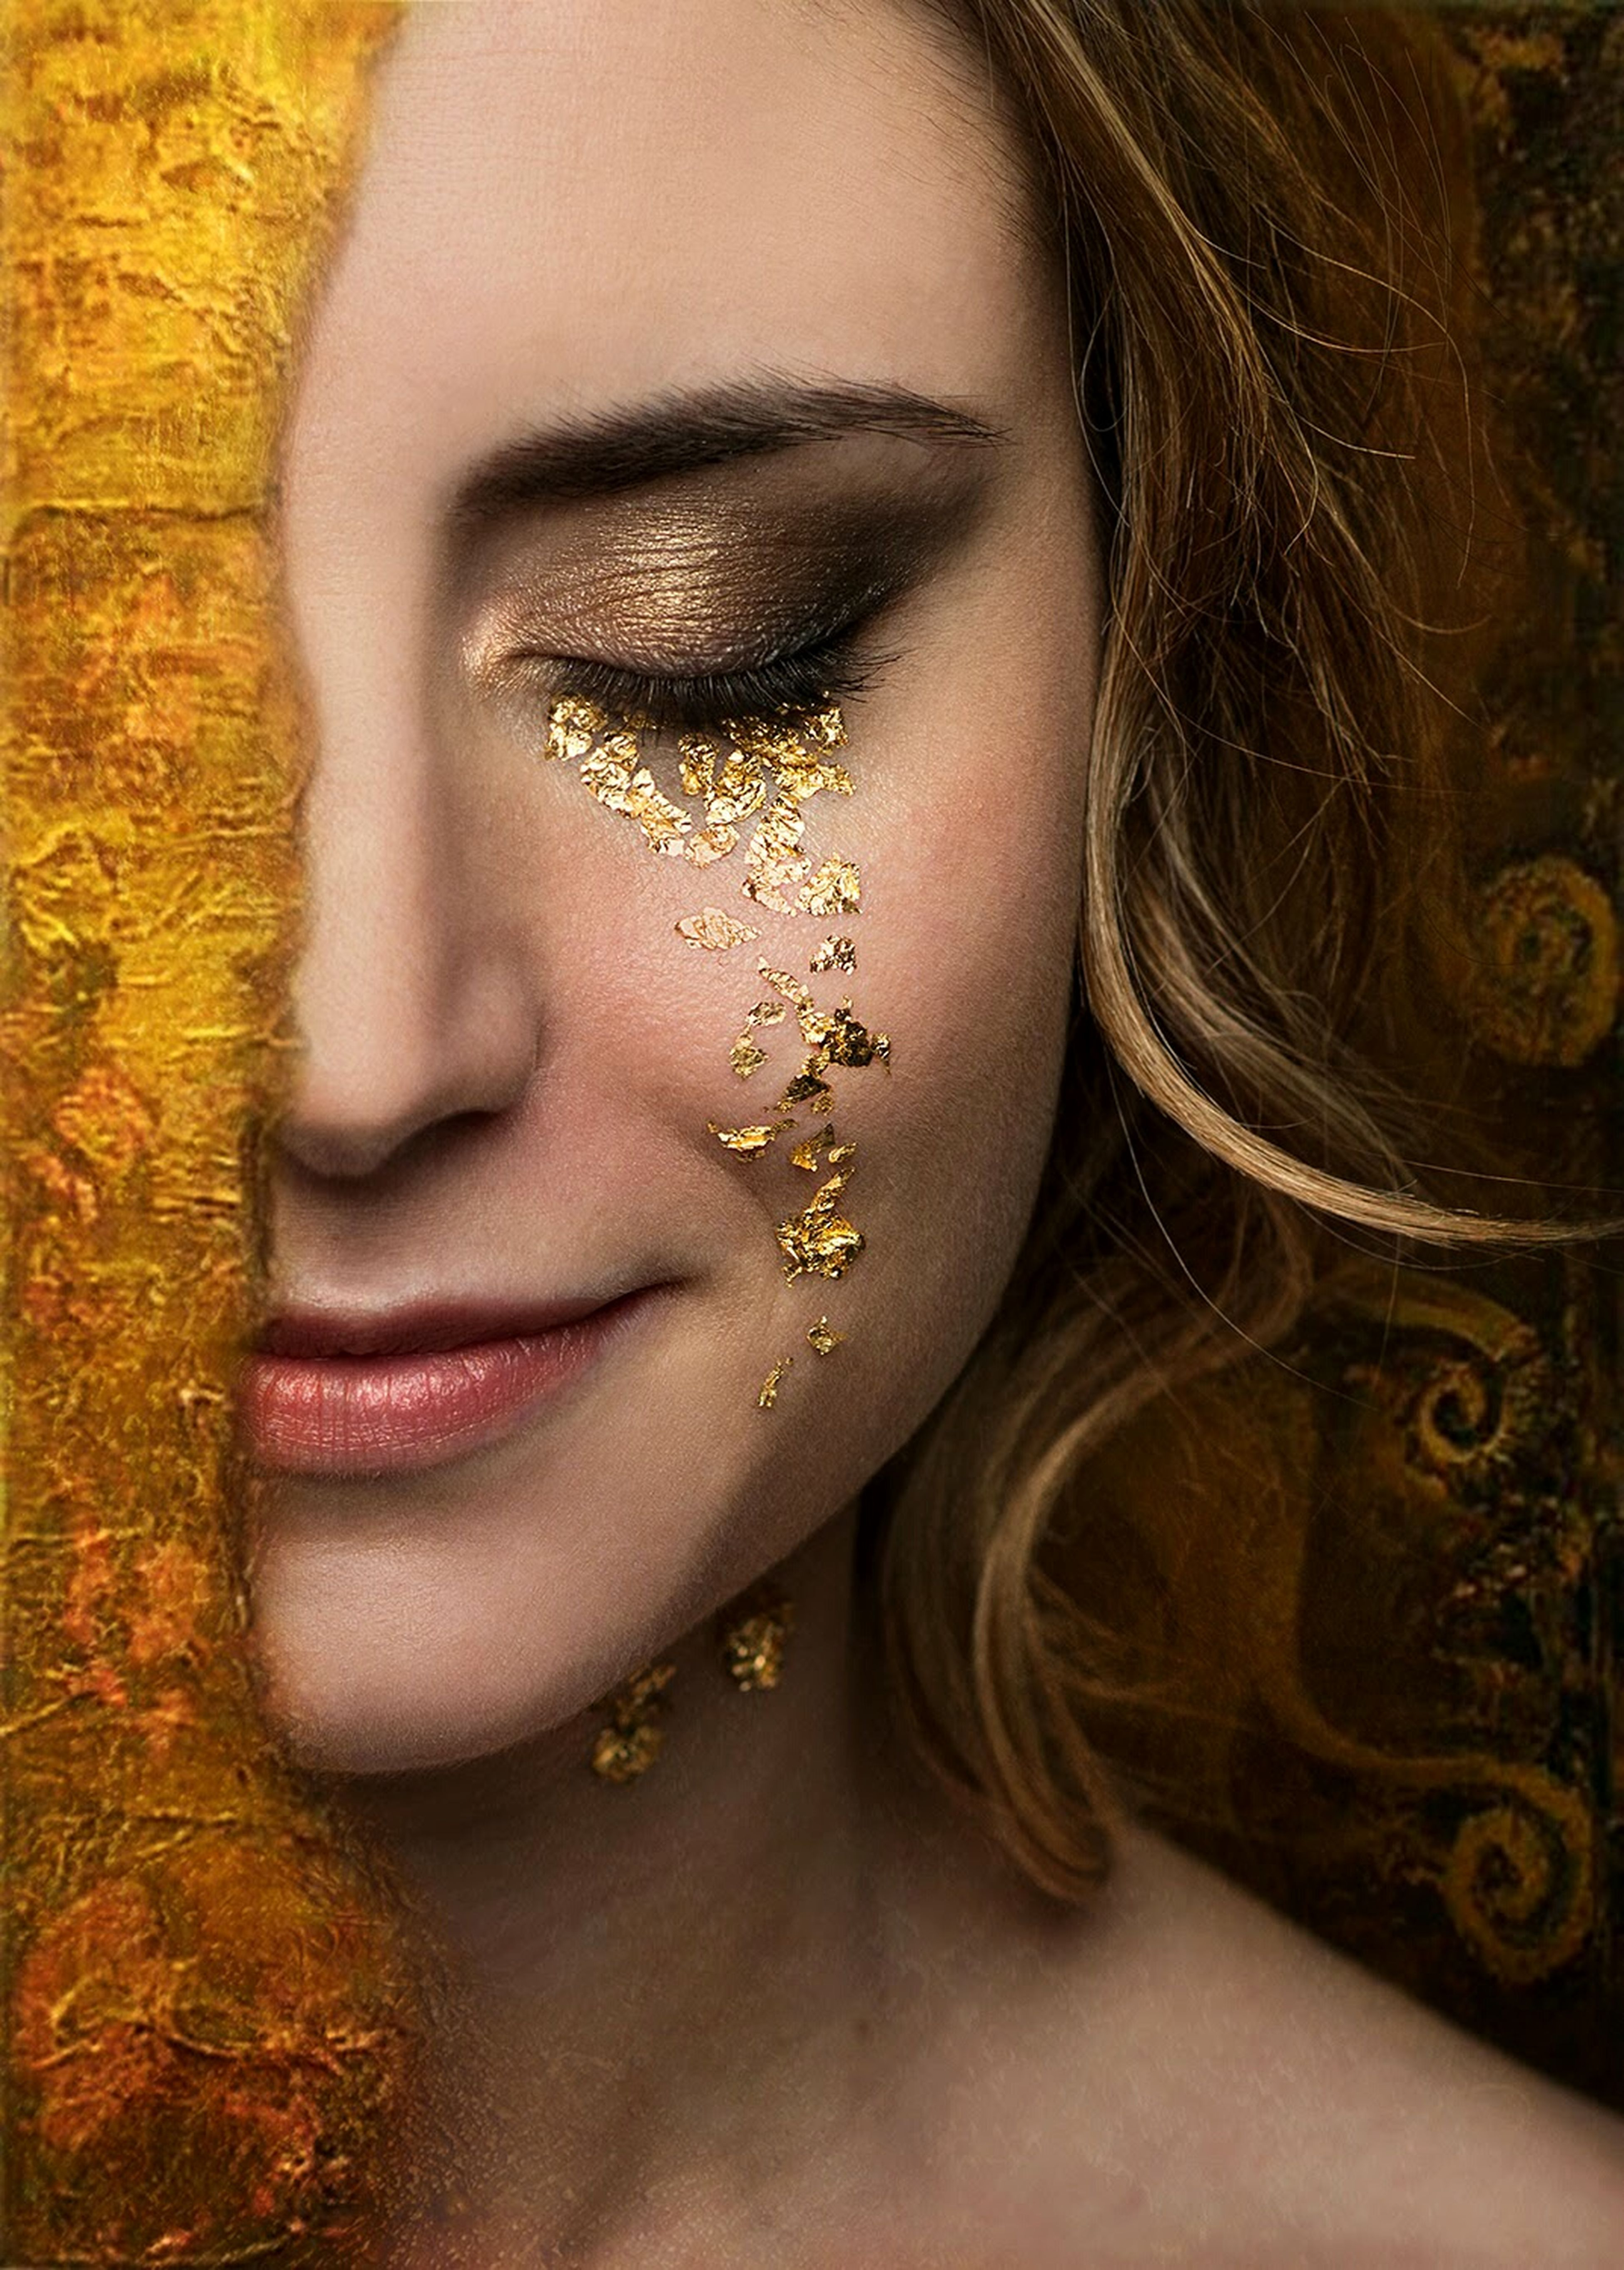 Freya. Instante Constante Only Women One Woman Only One Person Adult Make-up Beauty Beautiful Woman People Adults Only One Young Woman Only Eyes Closed  Human Face Close-up Headshot Portrait Fantasy Gold Colored Studio Shot Shiny Fine Art Photography The Portraitist - 2017 EyeEm Awards EyeEmNewHere Tears Gold Gold Tears